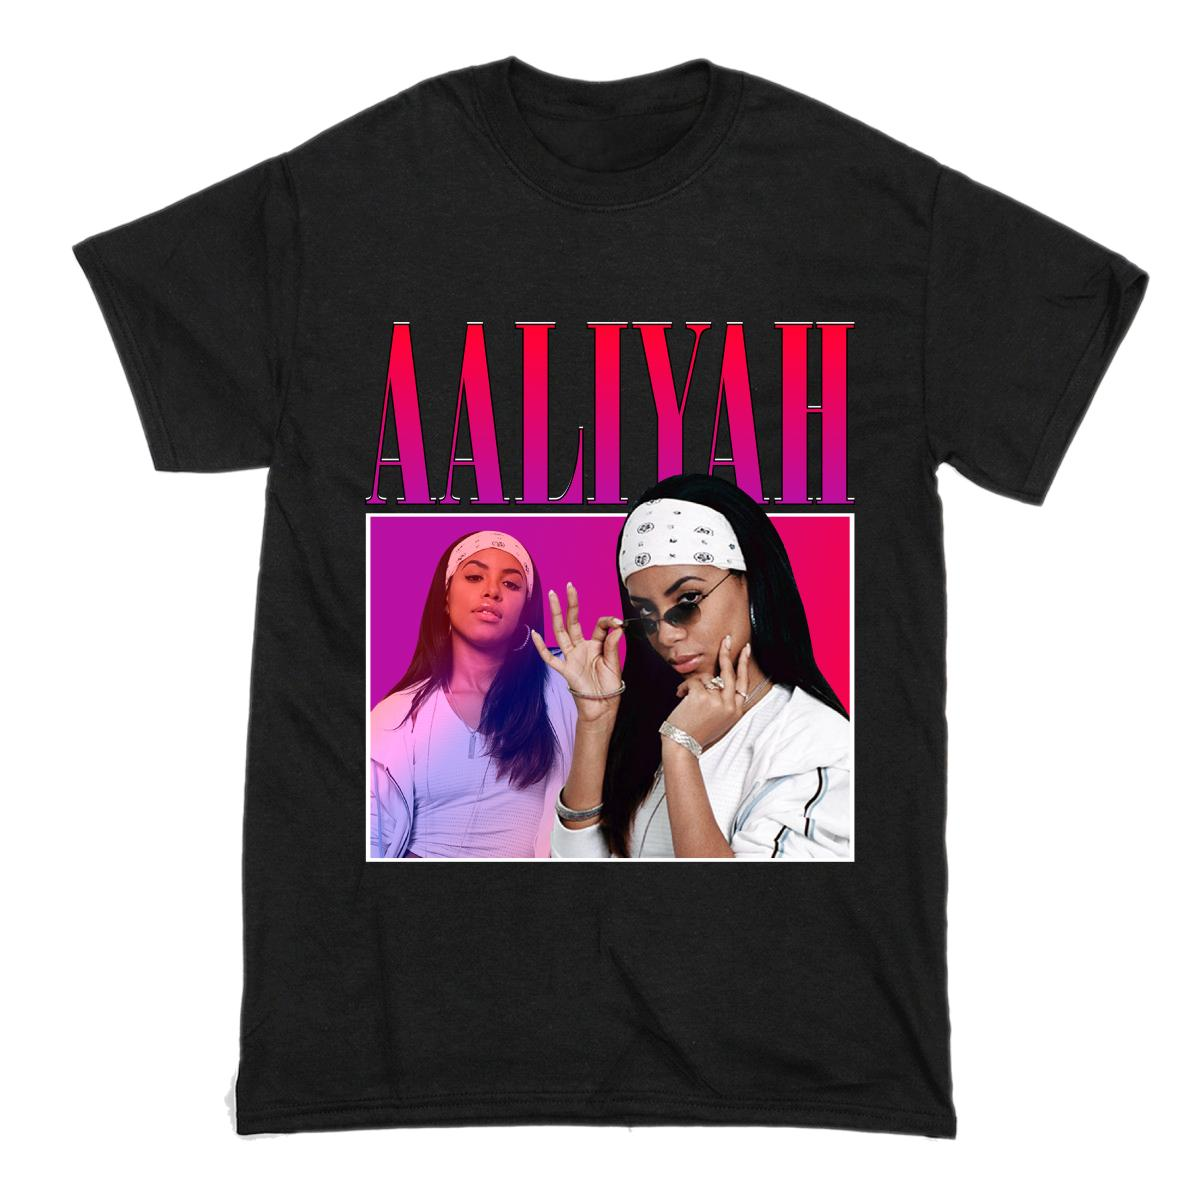 93073273 Aaliyah Men's Black Tees Shirt Print Short Sleeve Men Top Novelty T Shirts  Men'S Brand Clothing